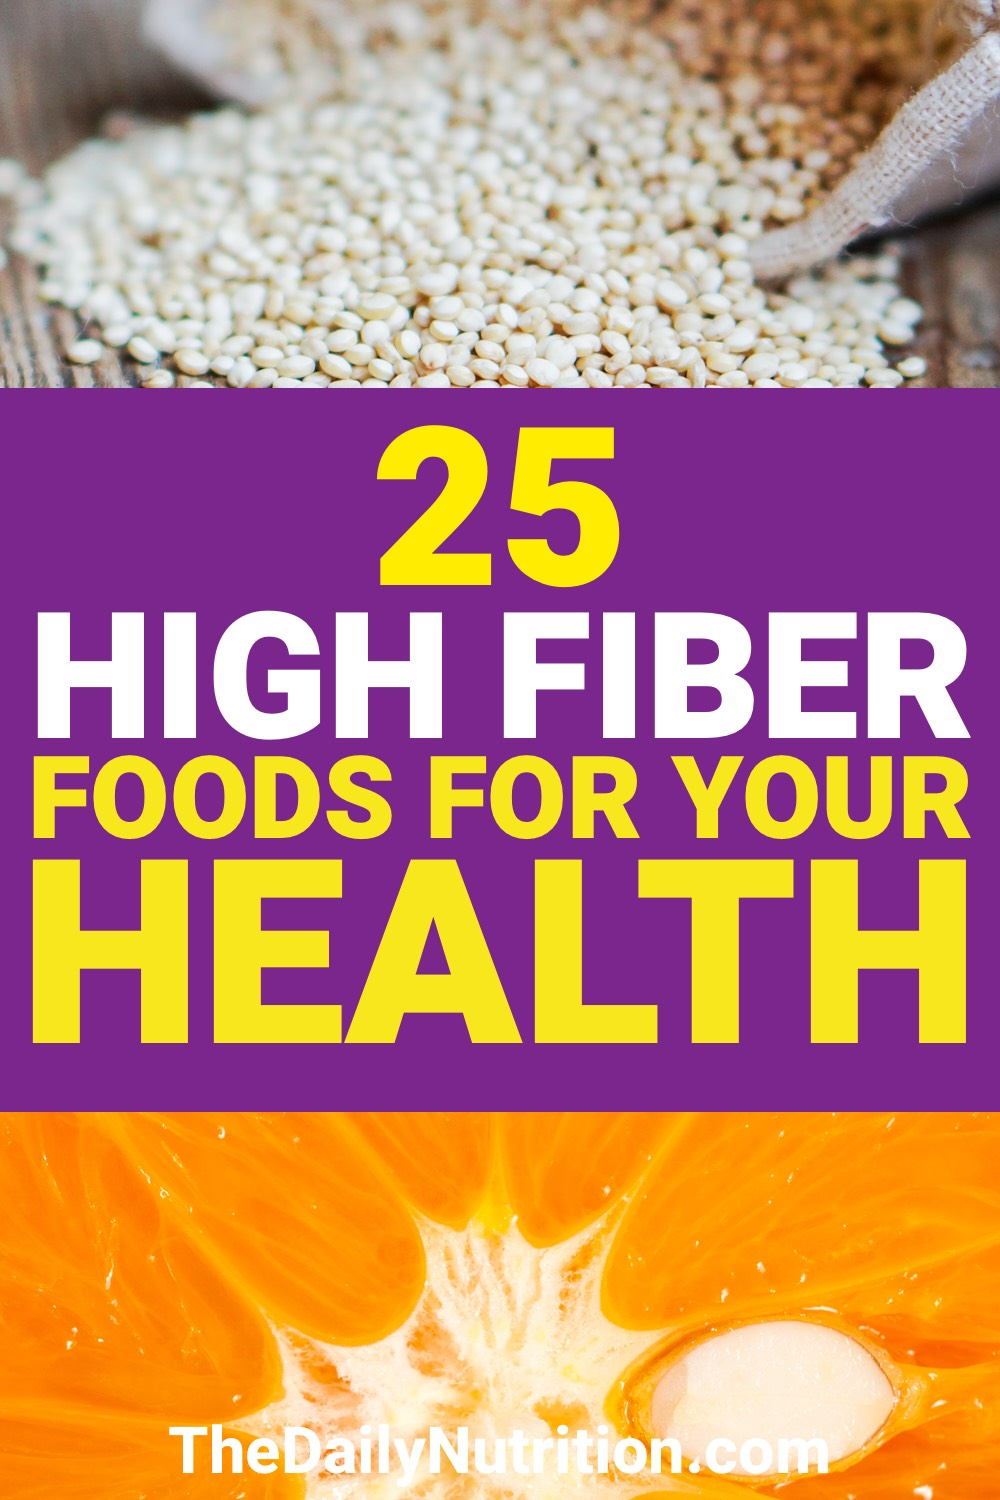 Fiber is an important part of any diet. Here are 25 high fiber foods that you need.